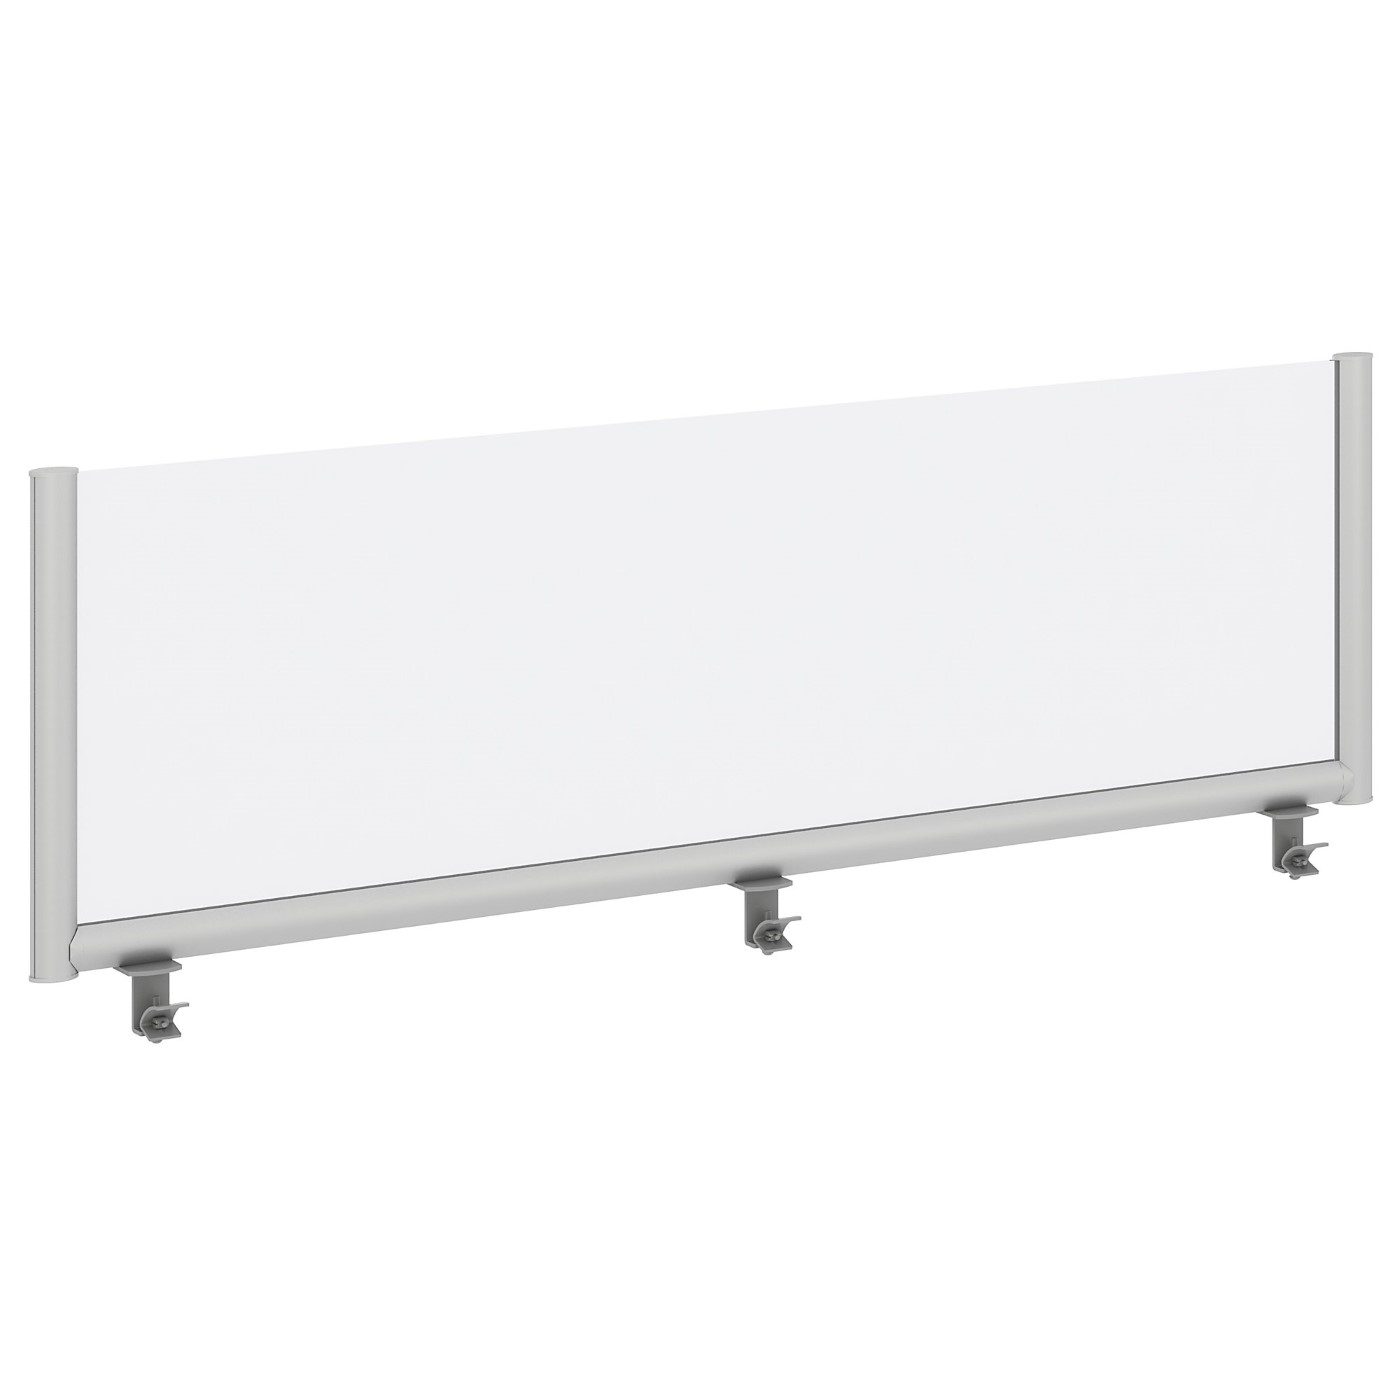 BUSH BUSINESS FURNITURE 60W DESK DIVIDER PRIVACY PANEL. FREE SHIPPING SALE DEDUCT 10% MORE ENTER '10percent' IN COUPON CODE BOX WHILE CHECKING OUT. ENDS 5-31-20.